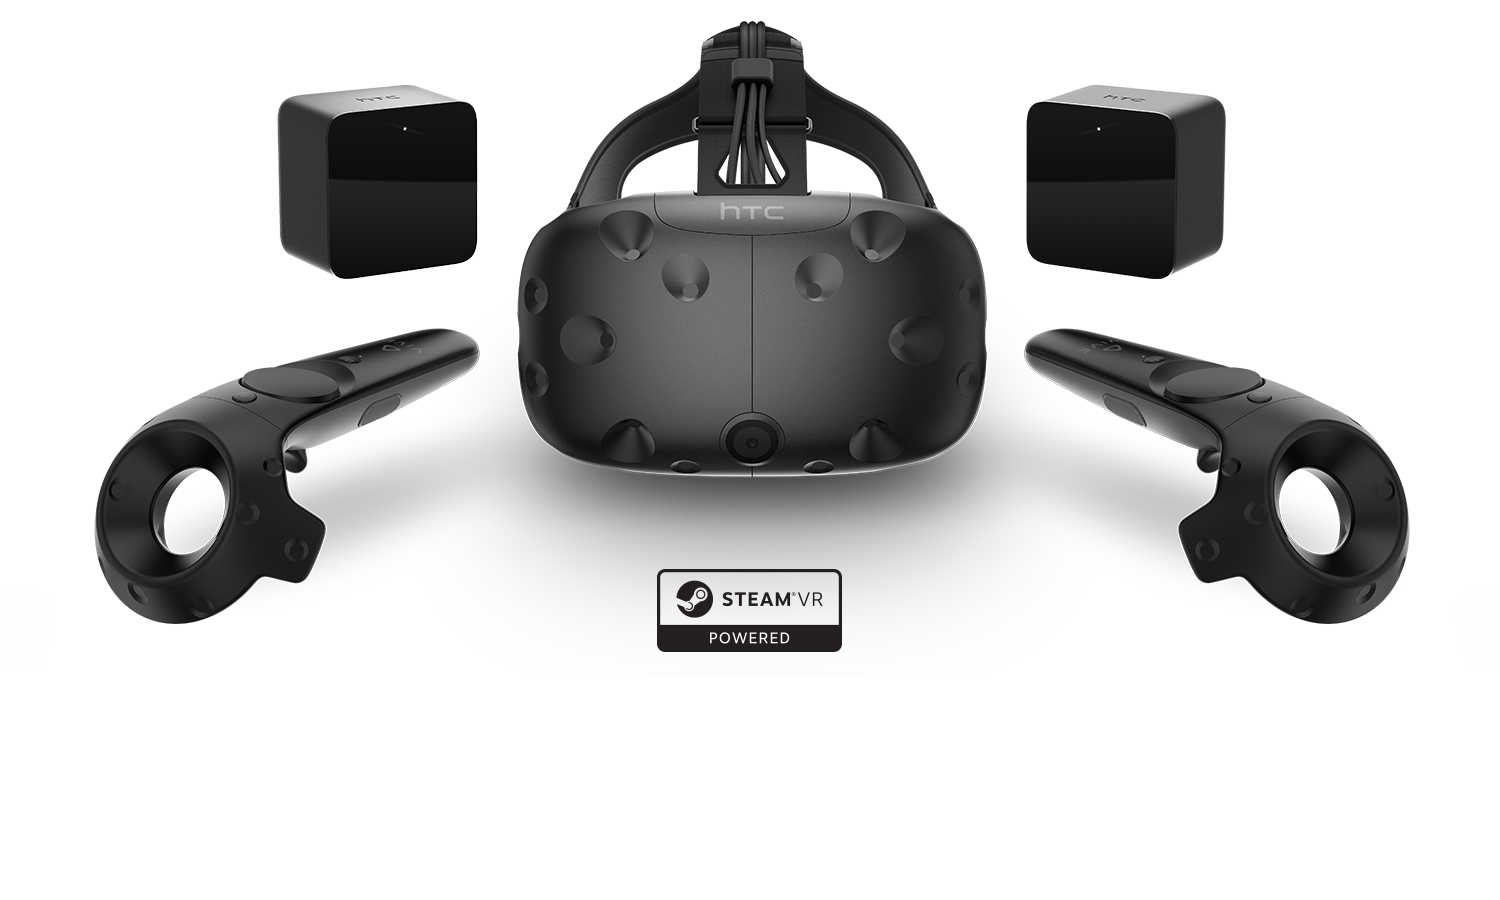 Full HTC Vive